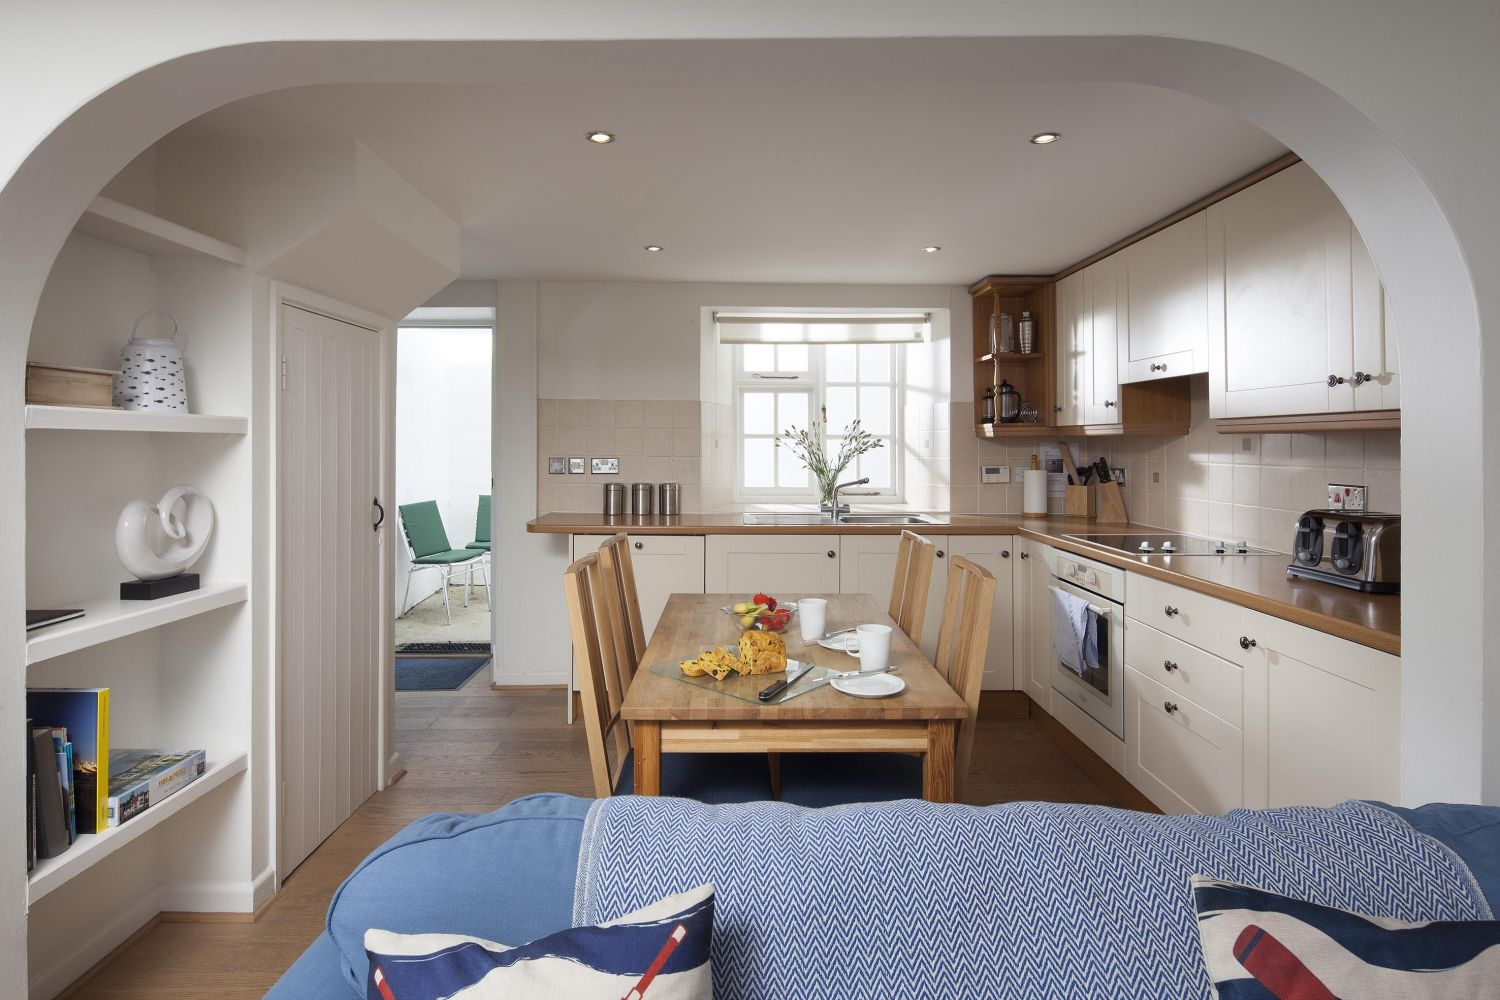 Jerboa 2 - Porthleven Holiday Cottages